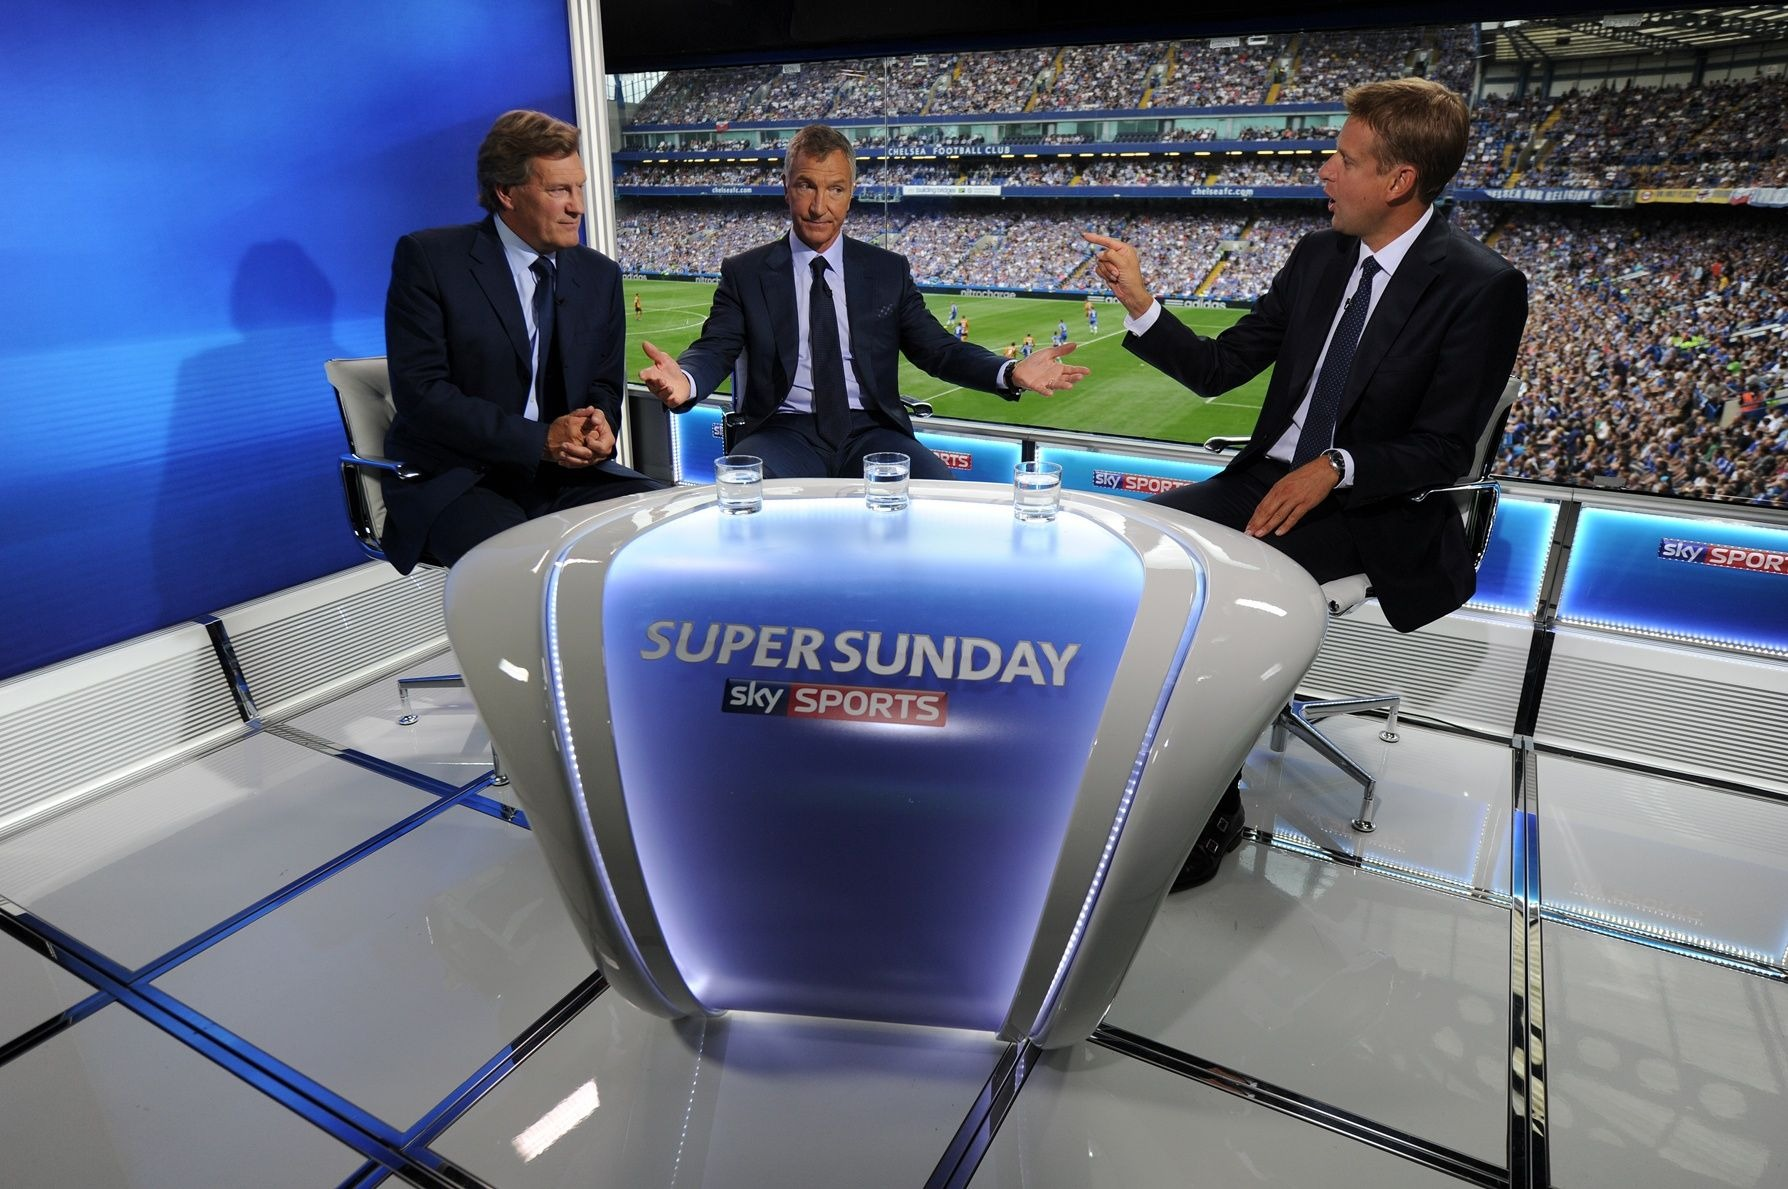 Glenn Hoddle, Graeme Souness and Ed Chamberlain during the Sky Sports Super Sunday coverage from Stamford Bridge.